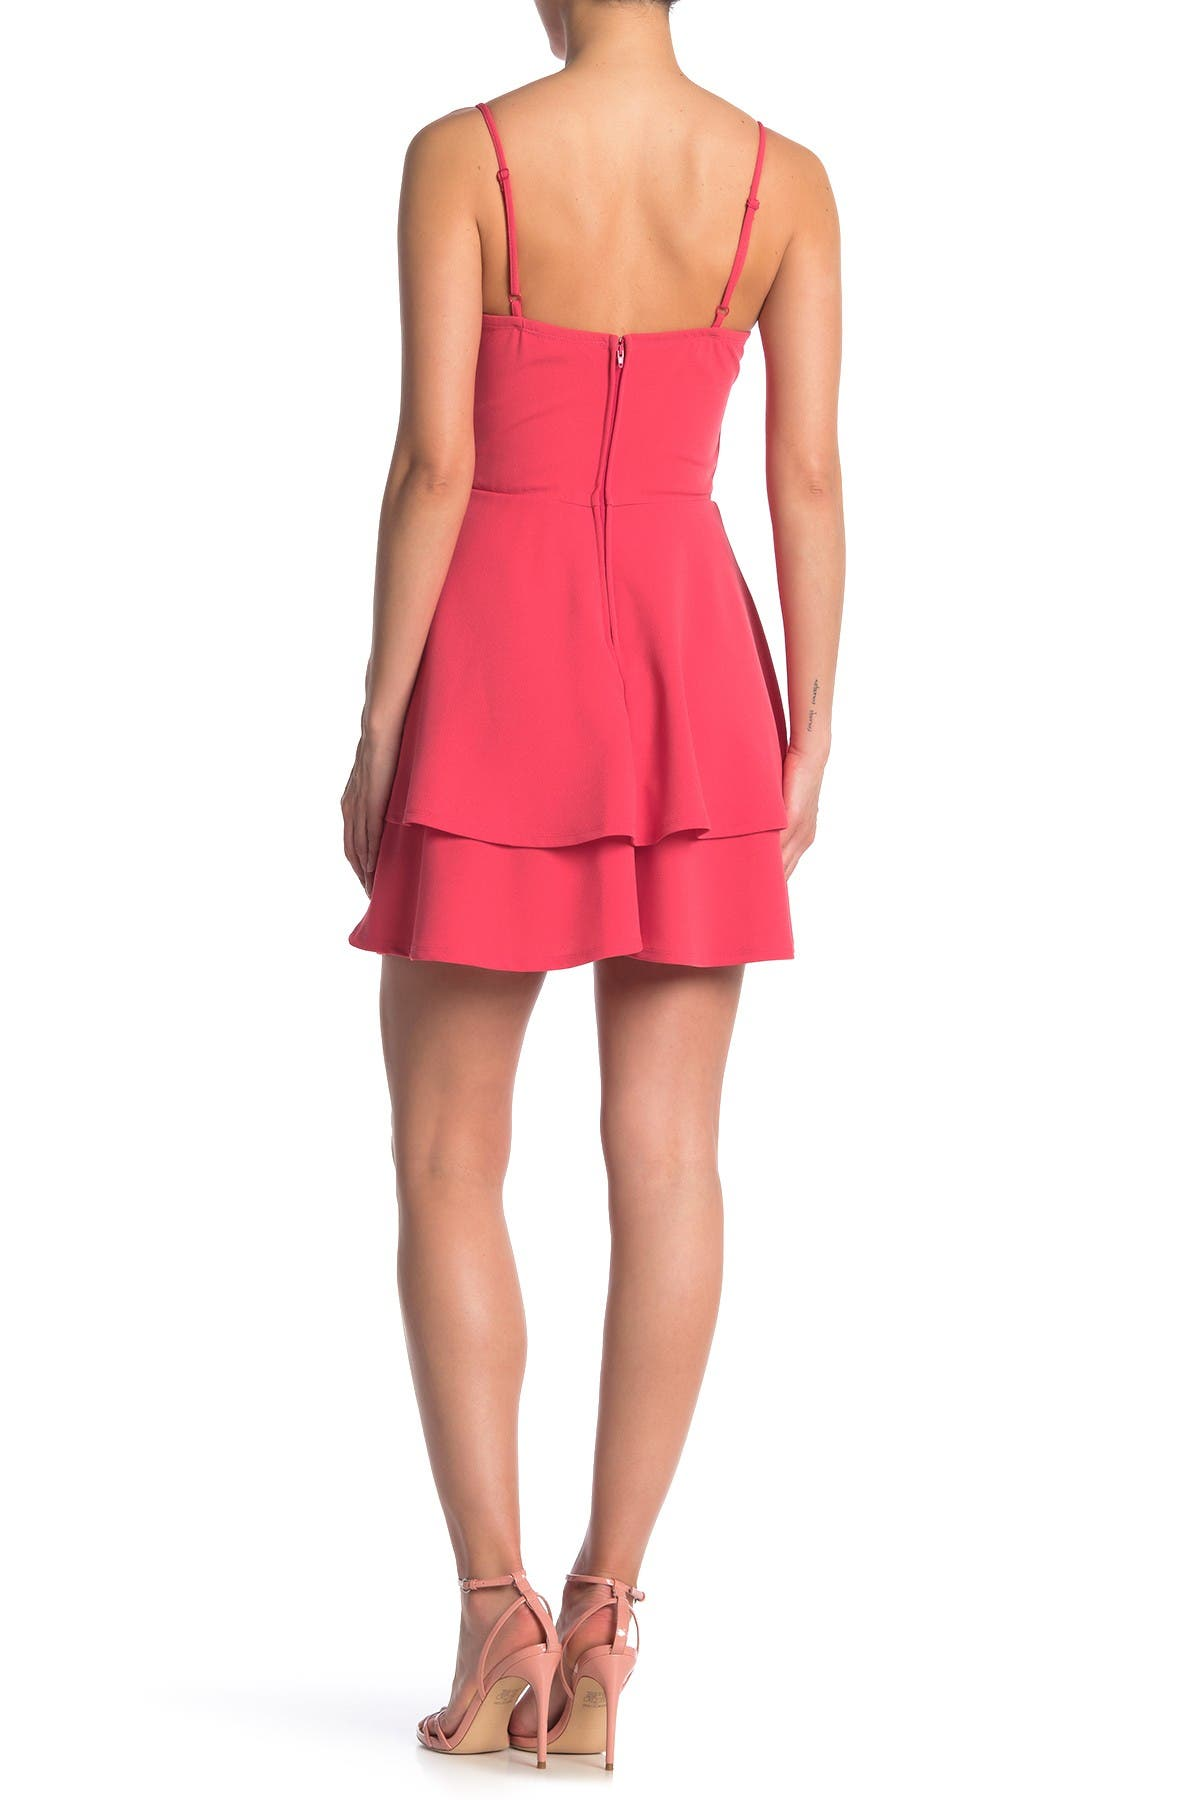 Image of ROW A V-Notch Wired Double Layer Skater Dress